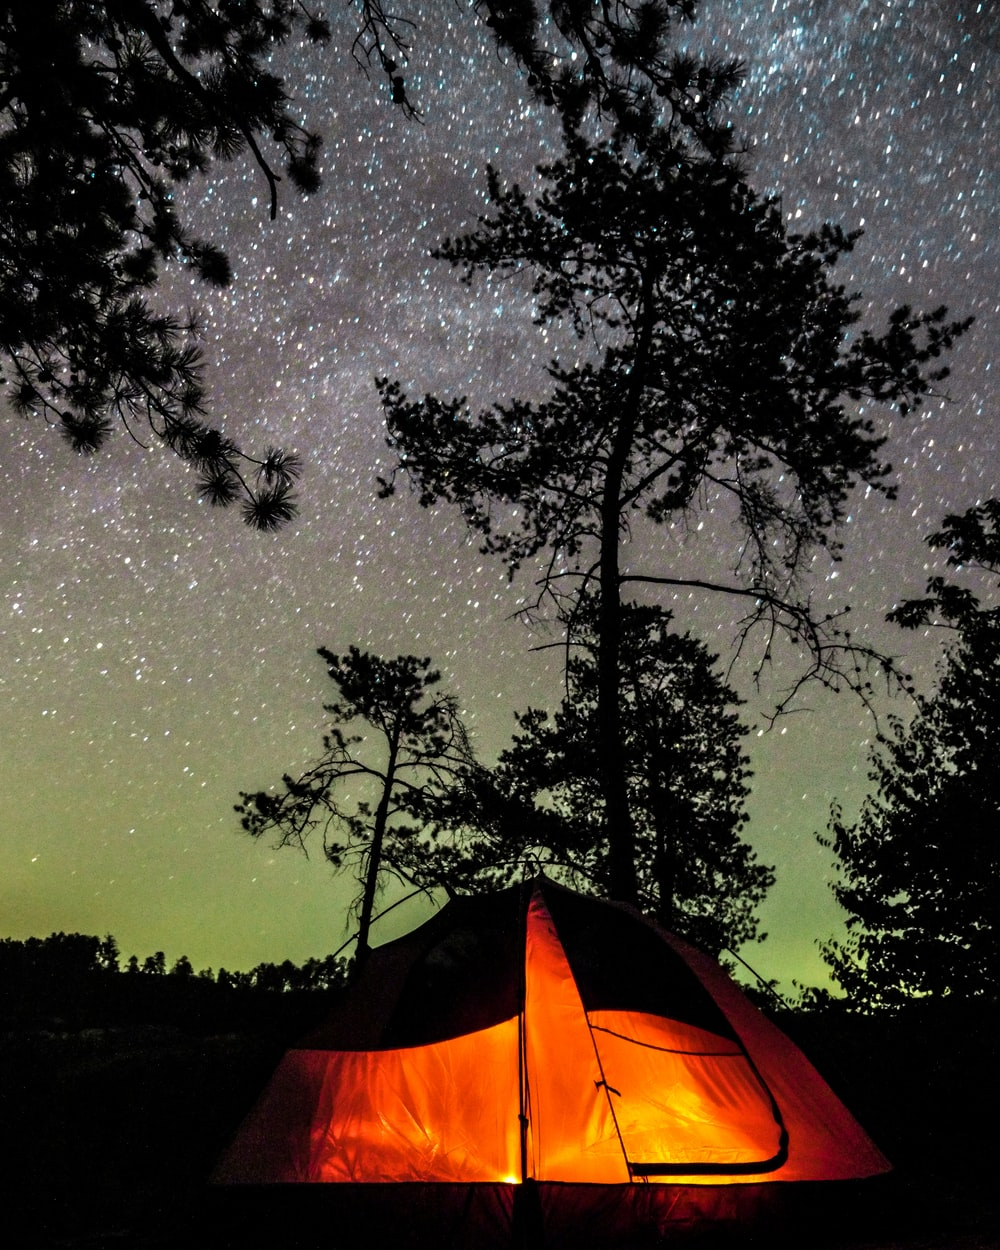 silhouette photo of tree beside orange and black tent during starry night